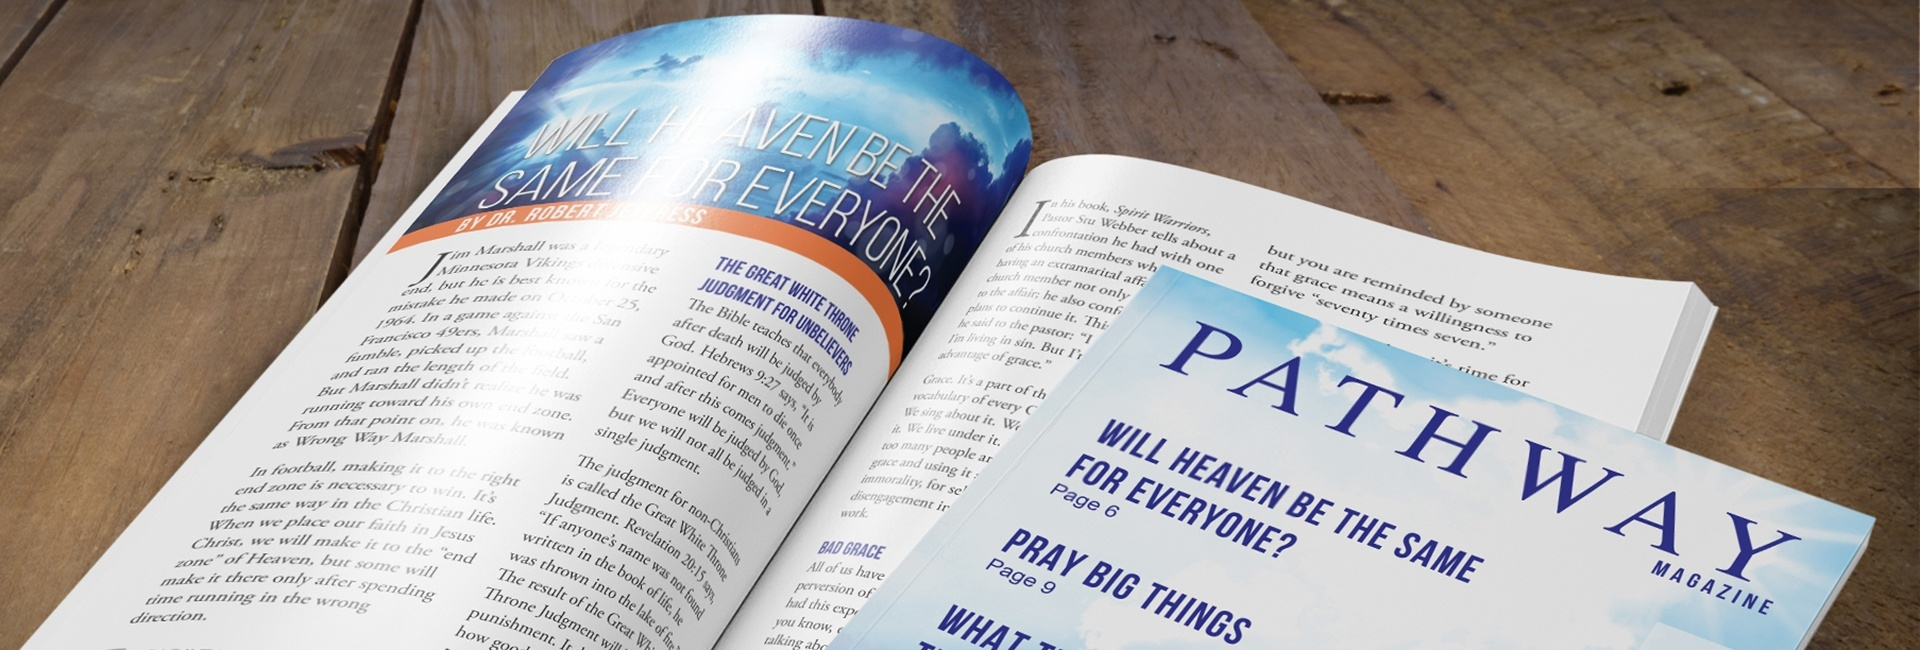 Sign up to receive Pathway Magazine - Pathway to Victory